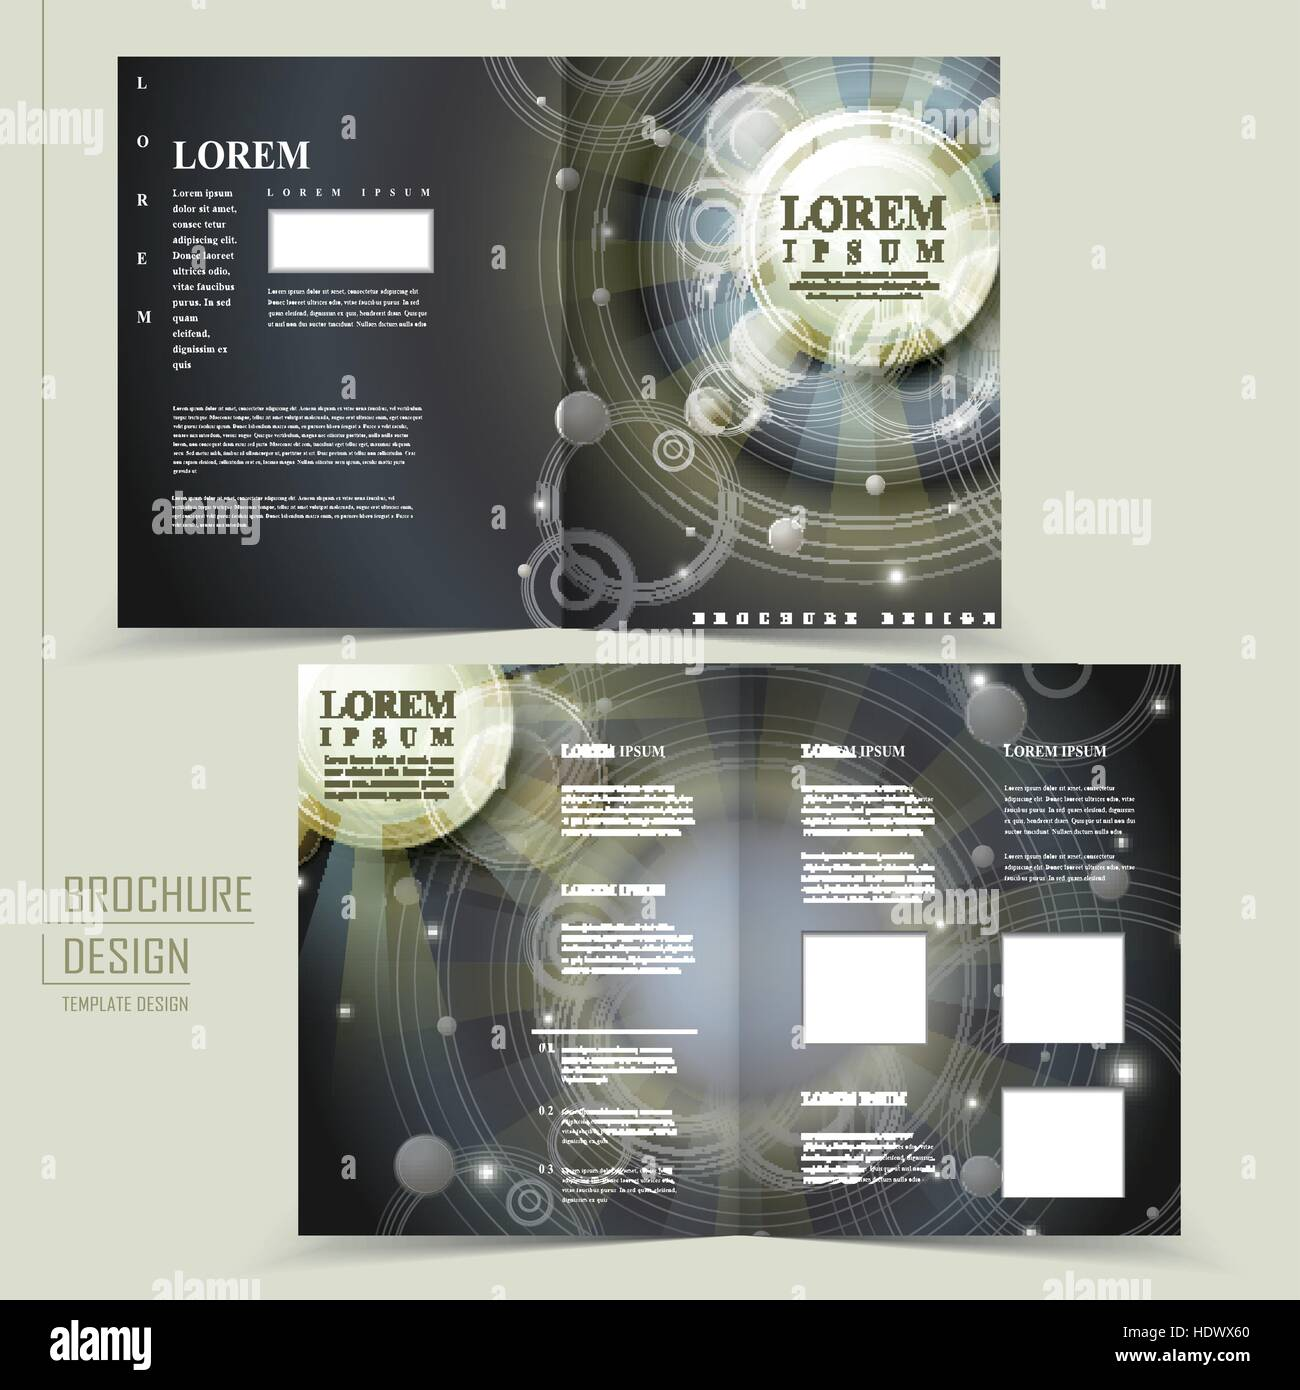 abstract egypt style design for half fold brochure template stock image